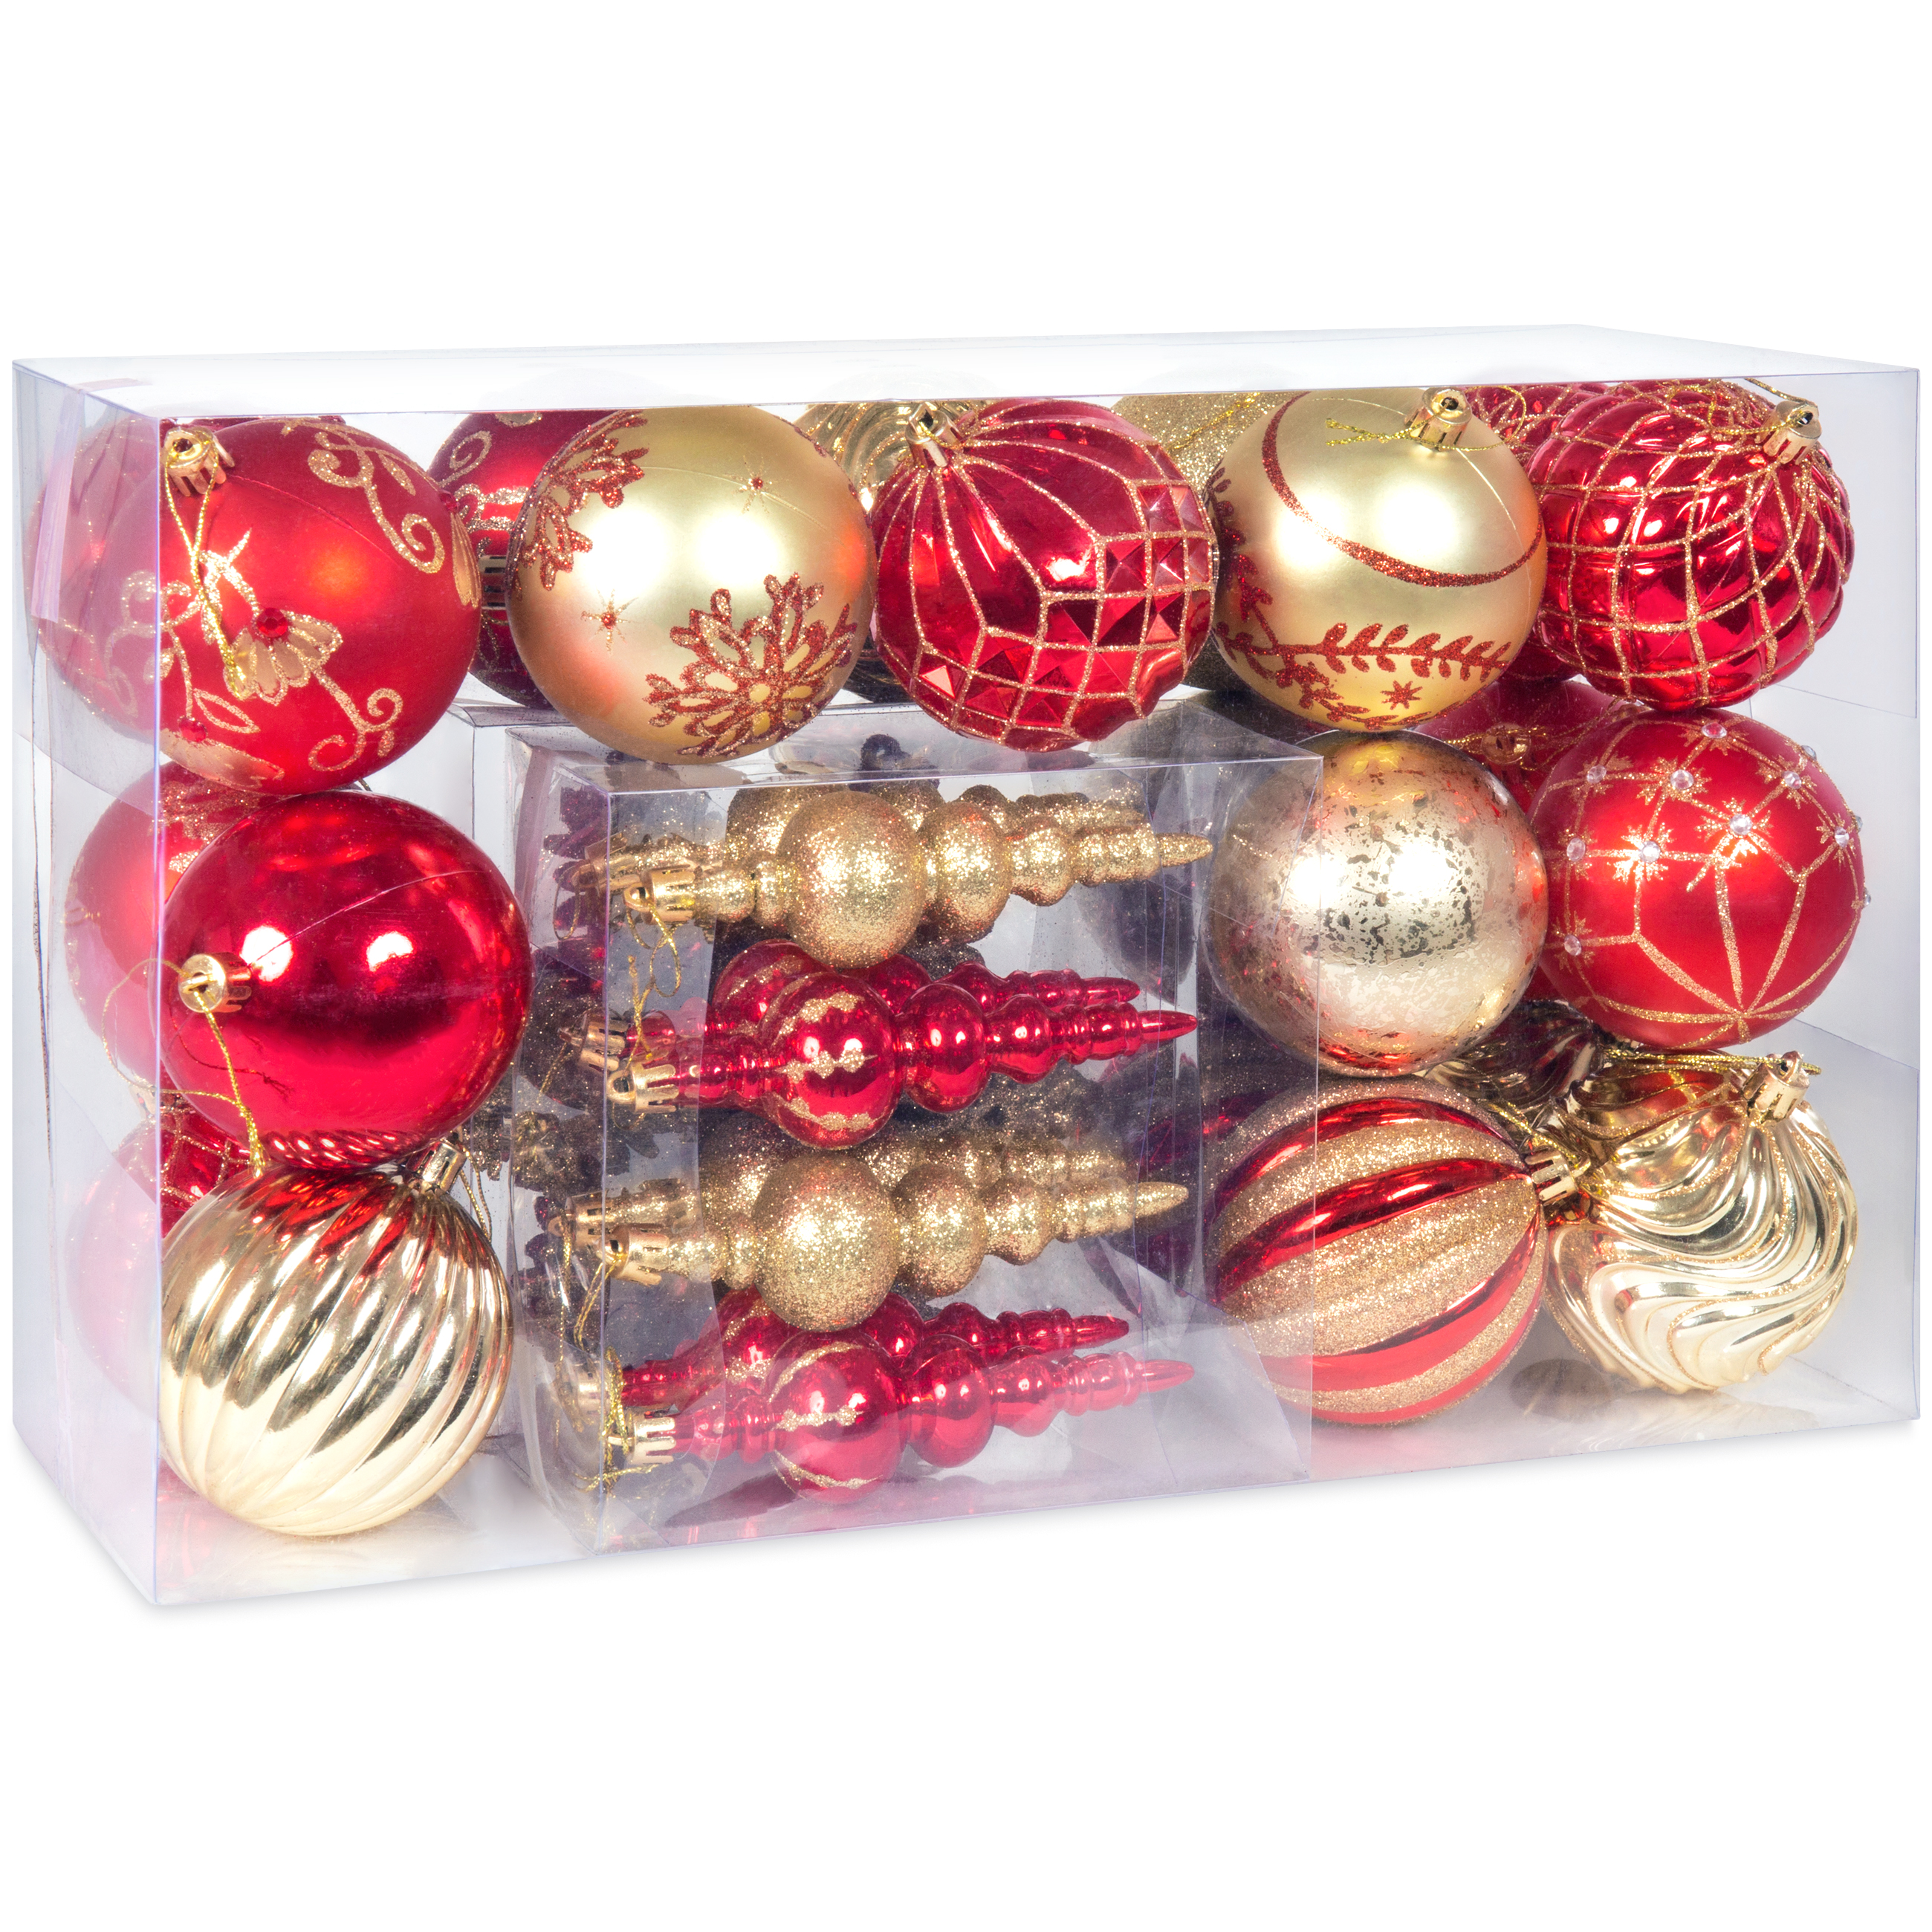 Best Choice Products Handcrafted Luxury Collection Set of 40 Christmas Ball Ornaments (Red & Gold)